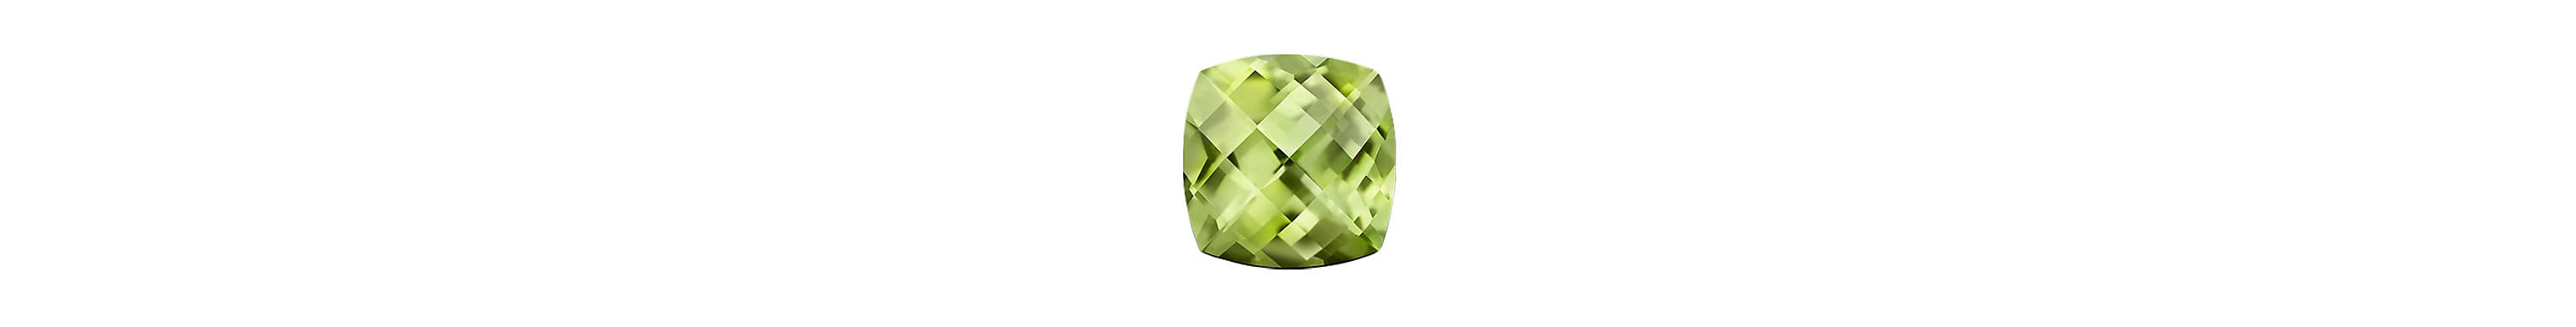 A color photograph shows a close-up shot of a faceted cushion-cut peridot on a white background.